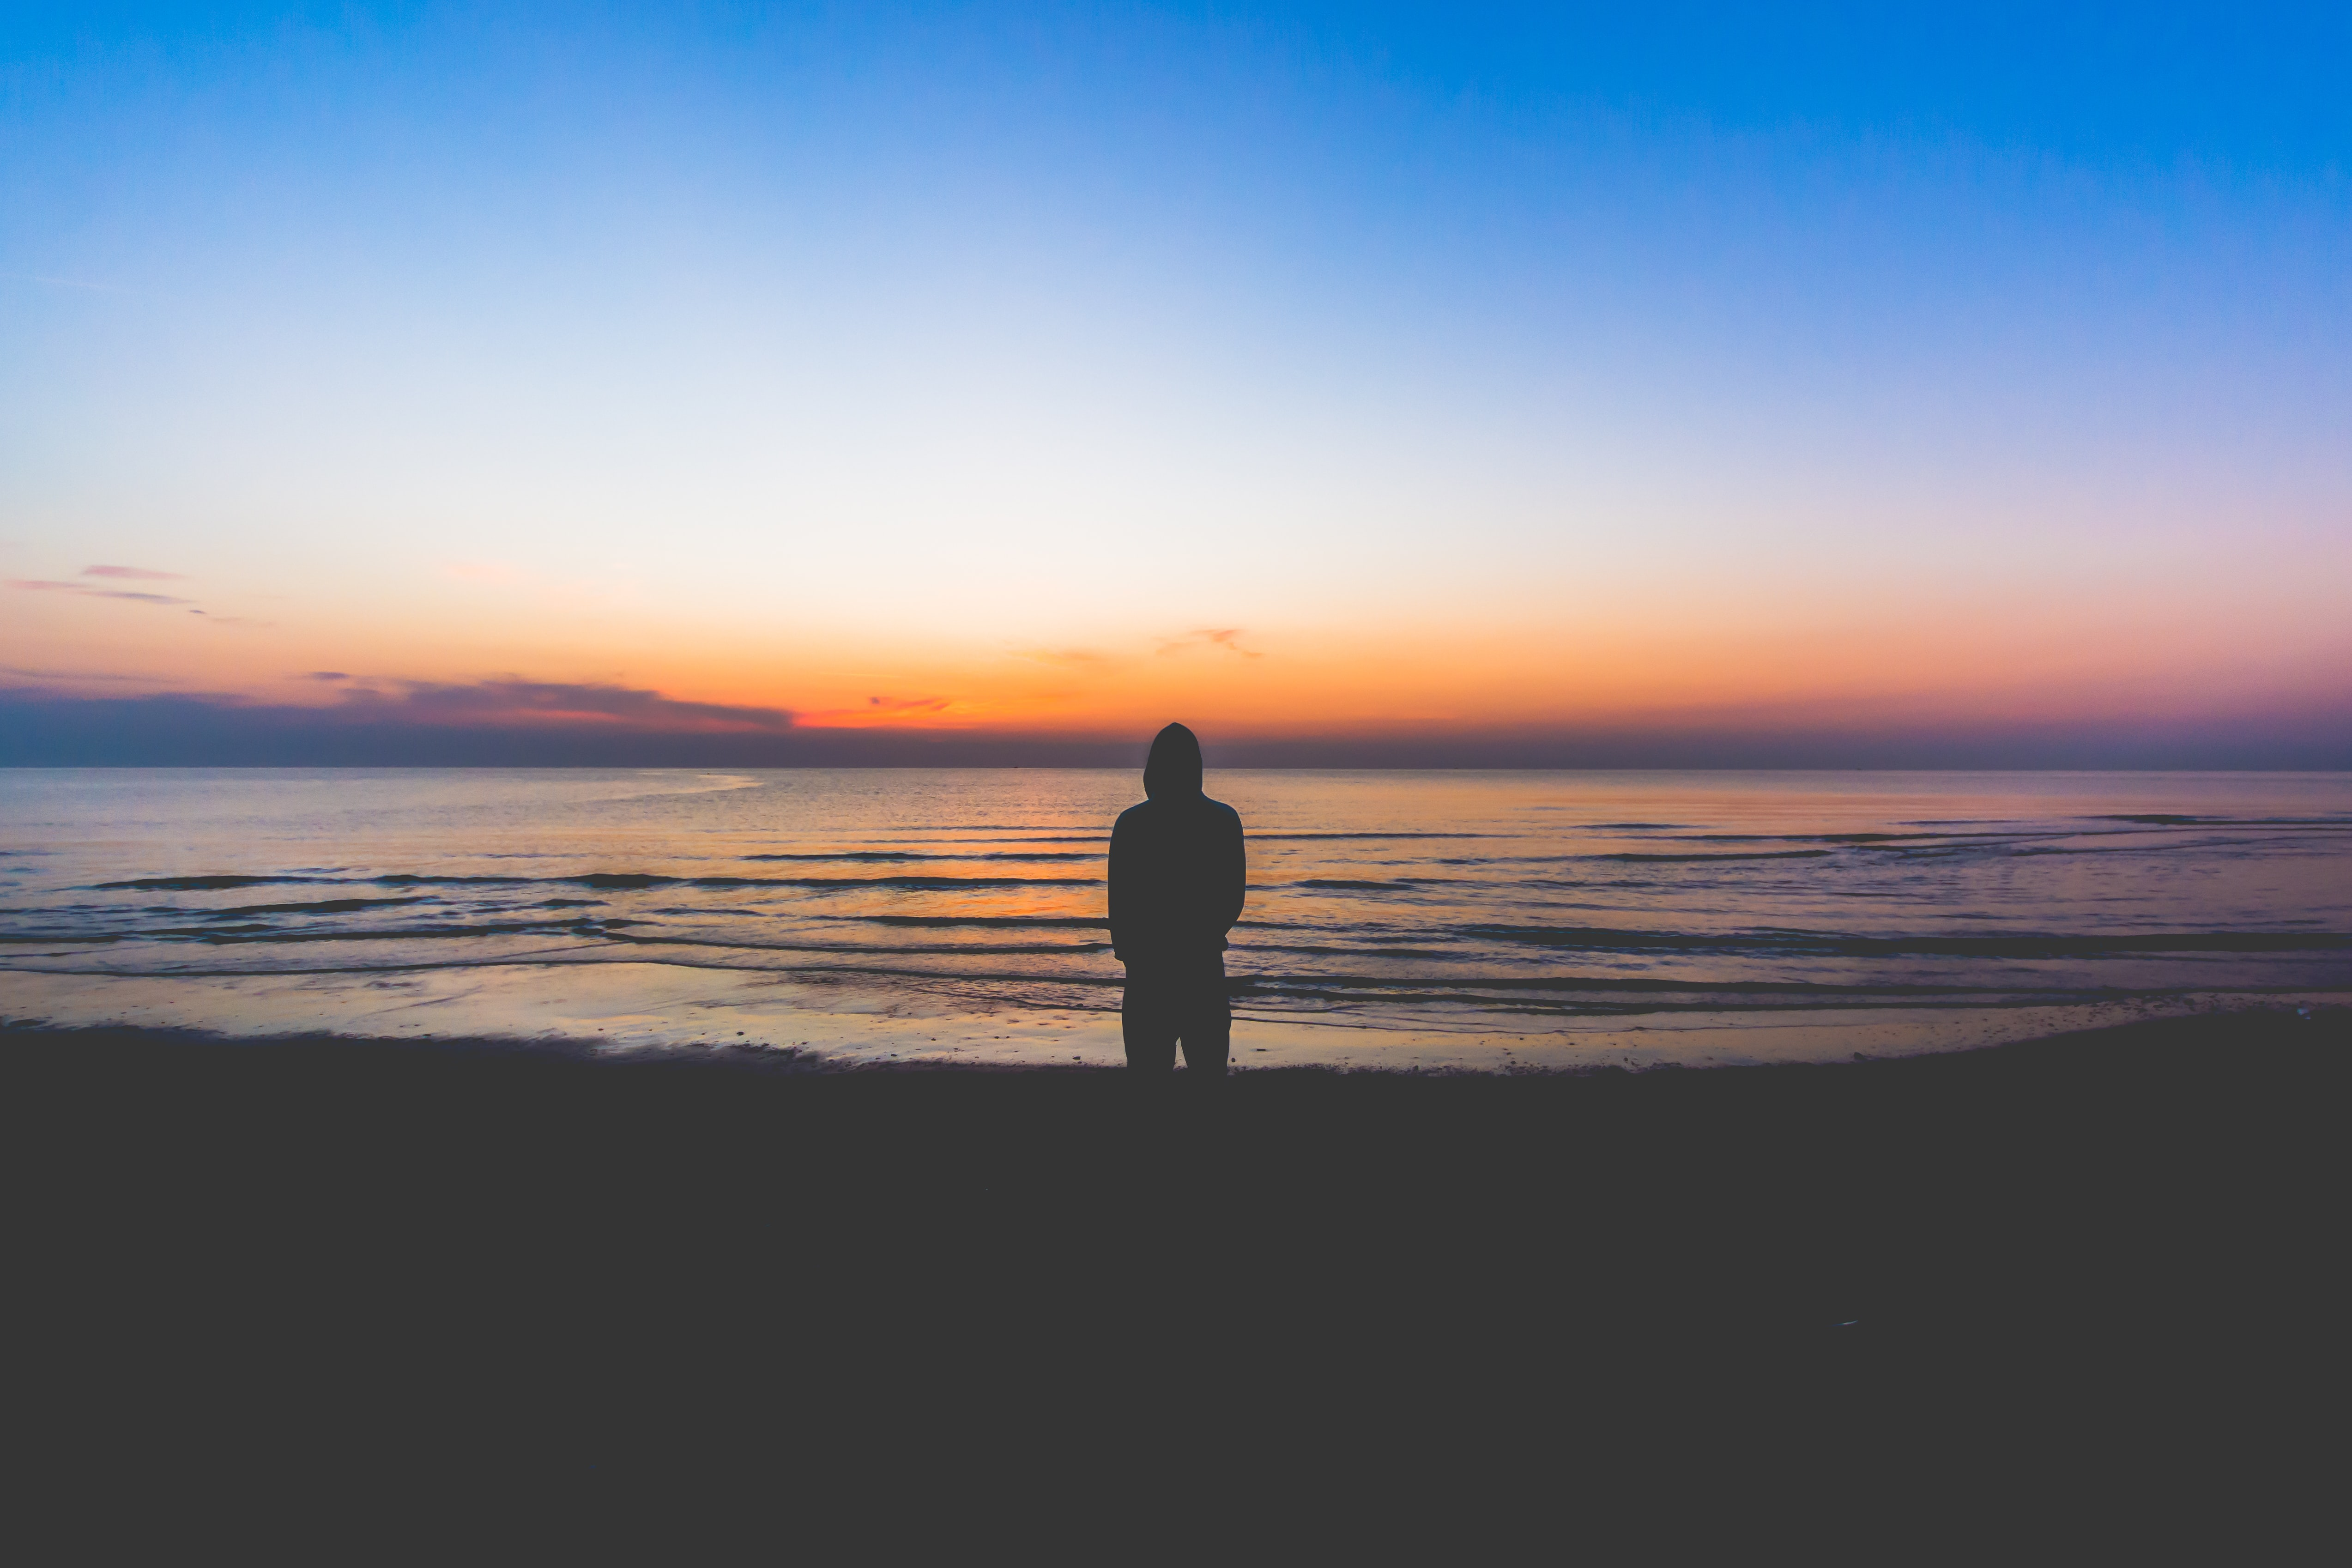 Silhouette of a person standing on the beach at the edge of rippling water watching the sunset